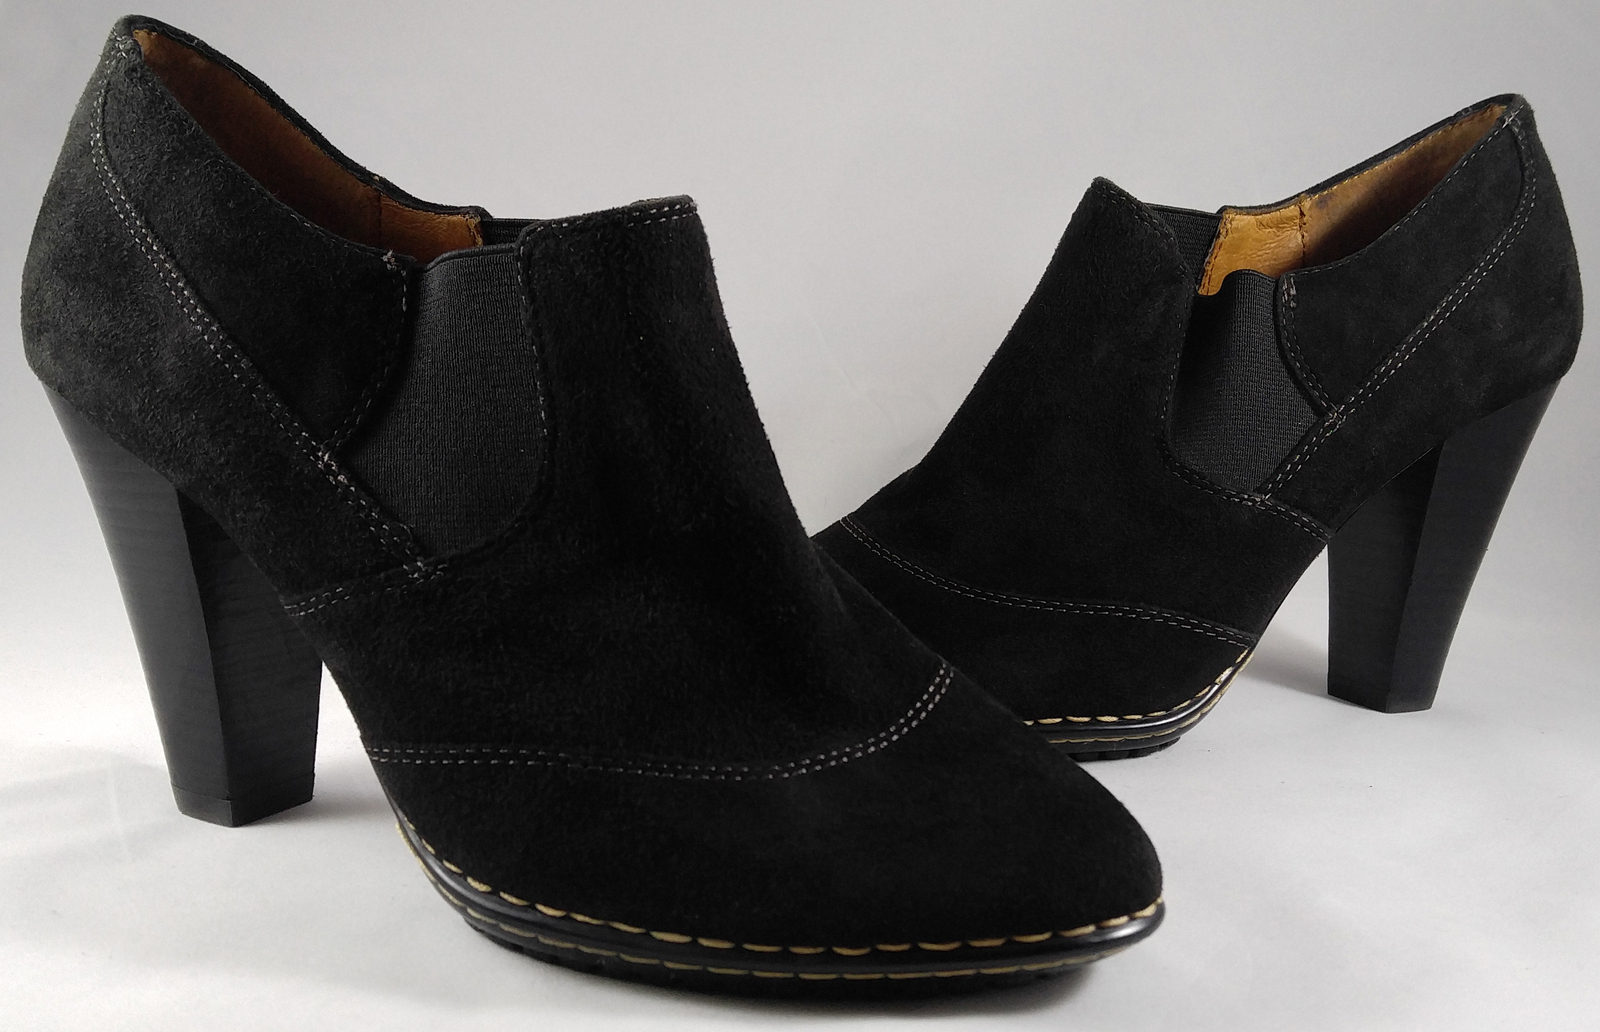 Women's Sofft Simola Ankle Boots Booties Heels Shoes Black Suede Leather Size 7W